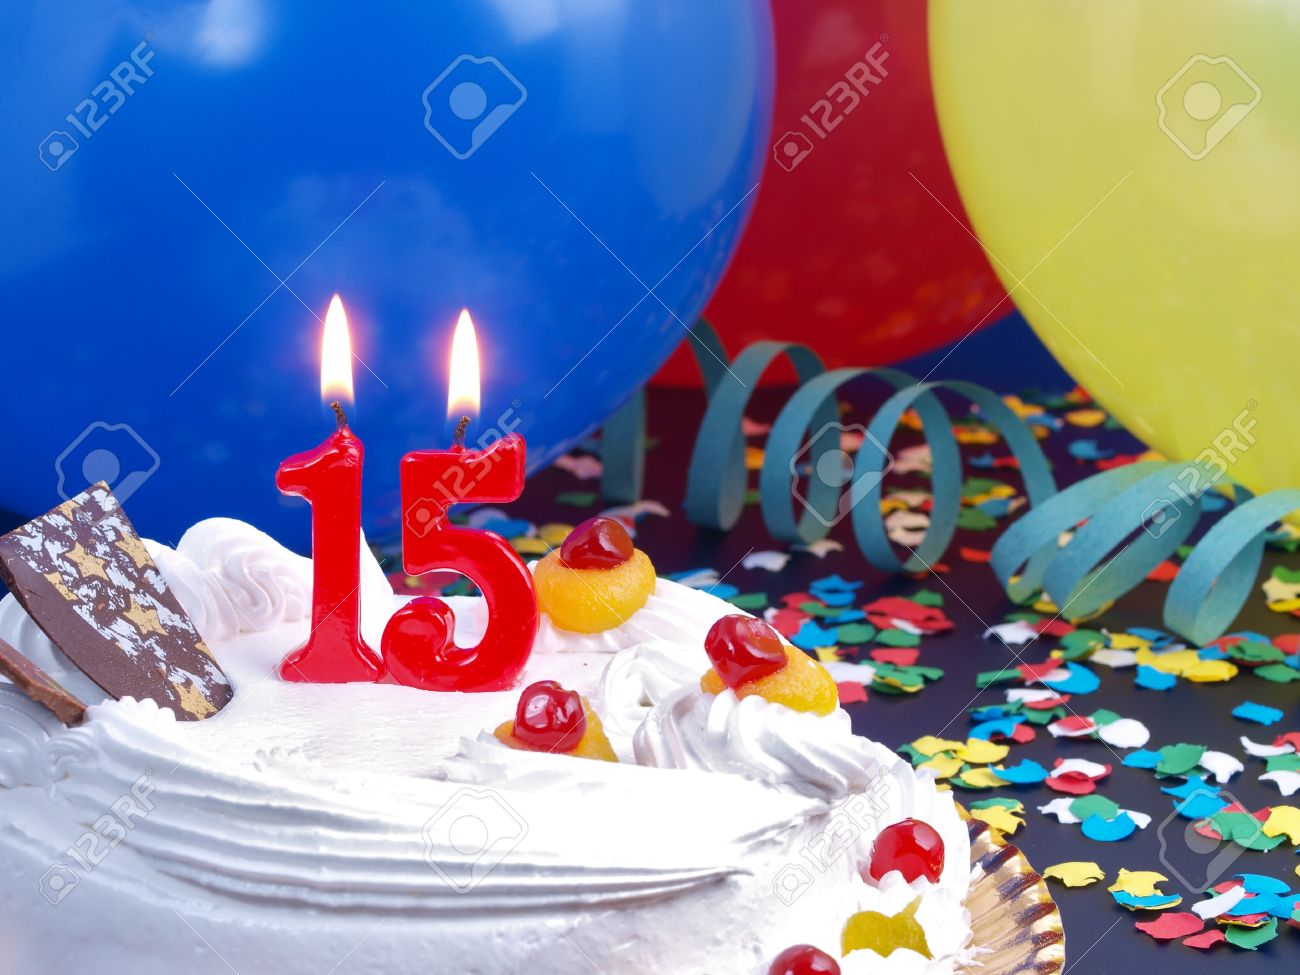 Birthday Cake With Red Candles Showing Nr 15 Stock Photo